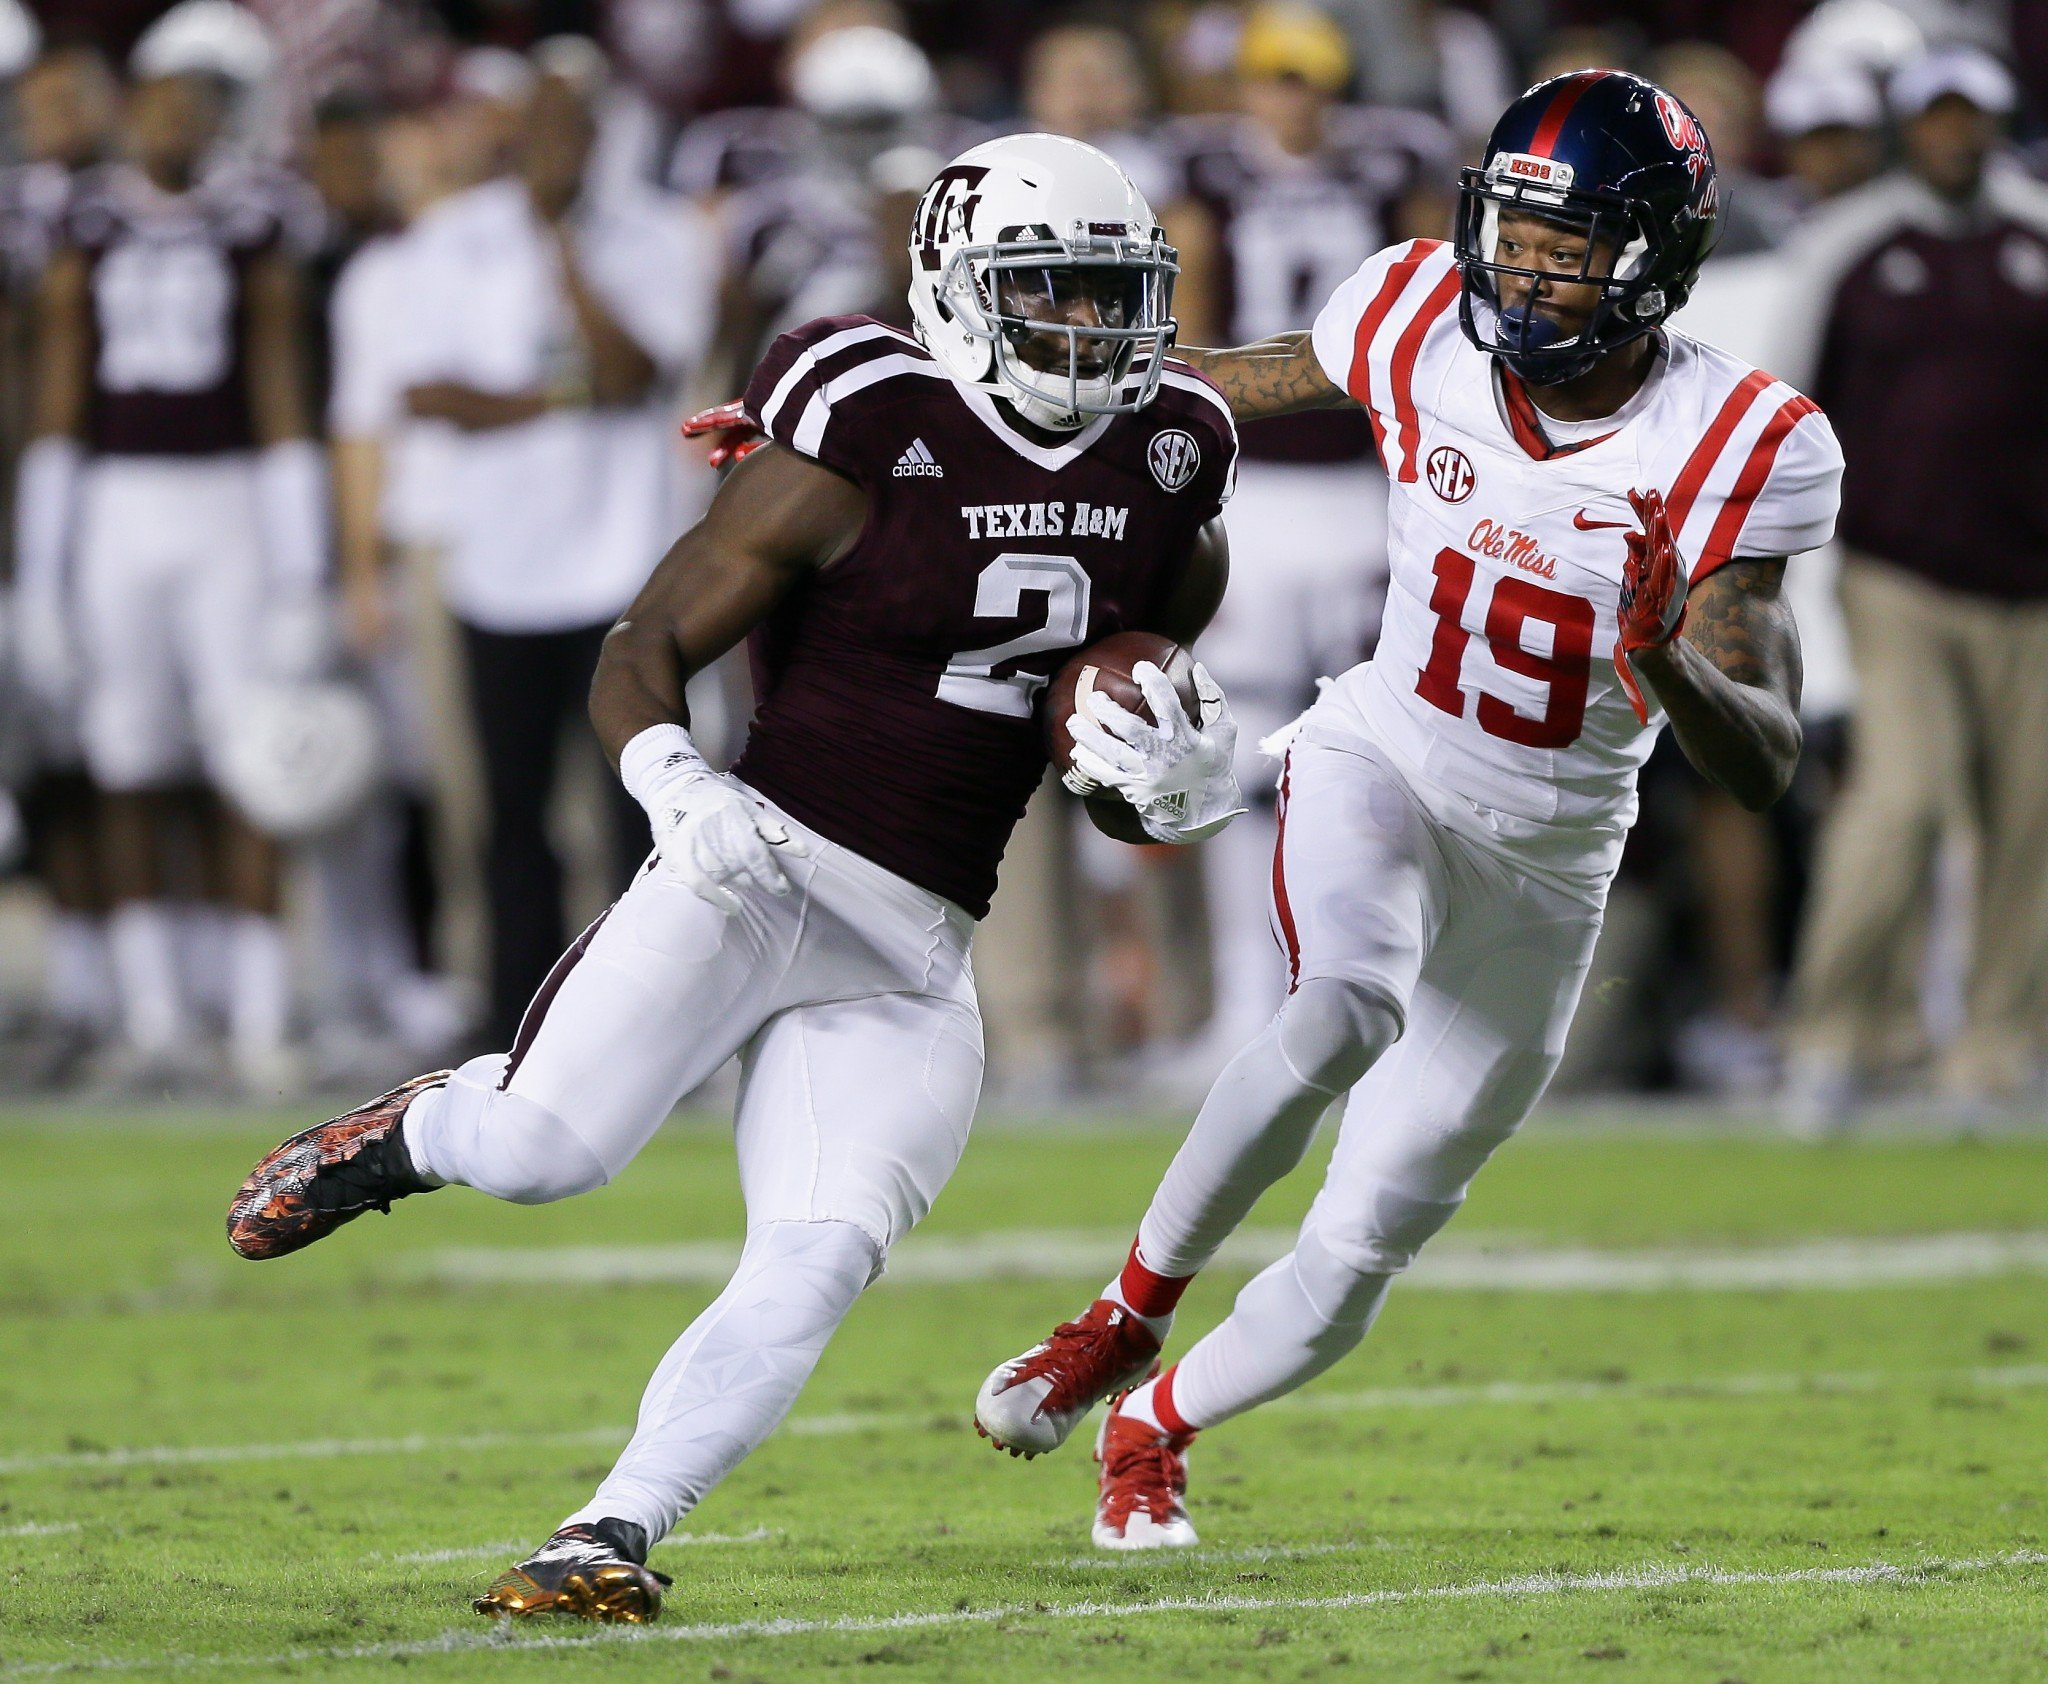 Speedy Noil has 42 catches in the past two years after 46 as a freshman in 2014. (Getty)